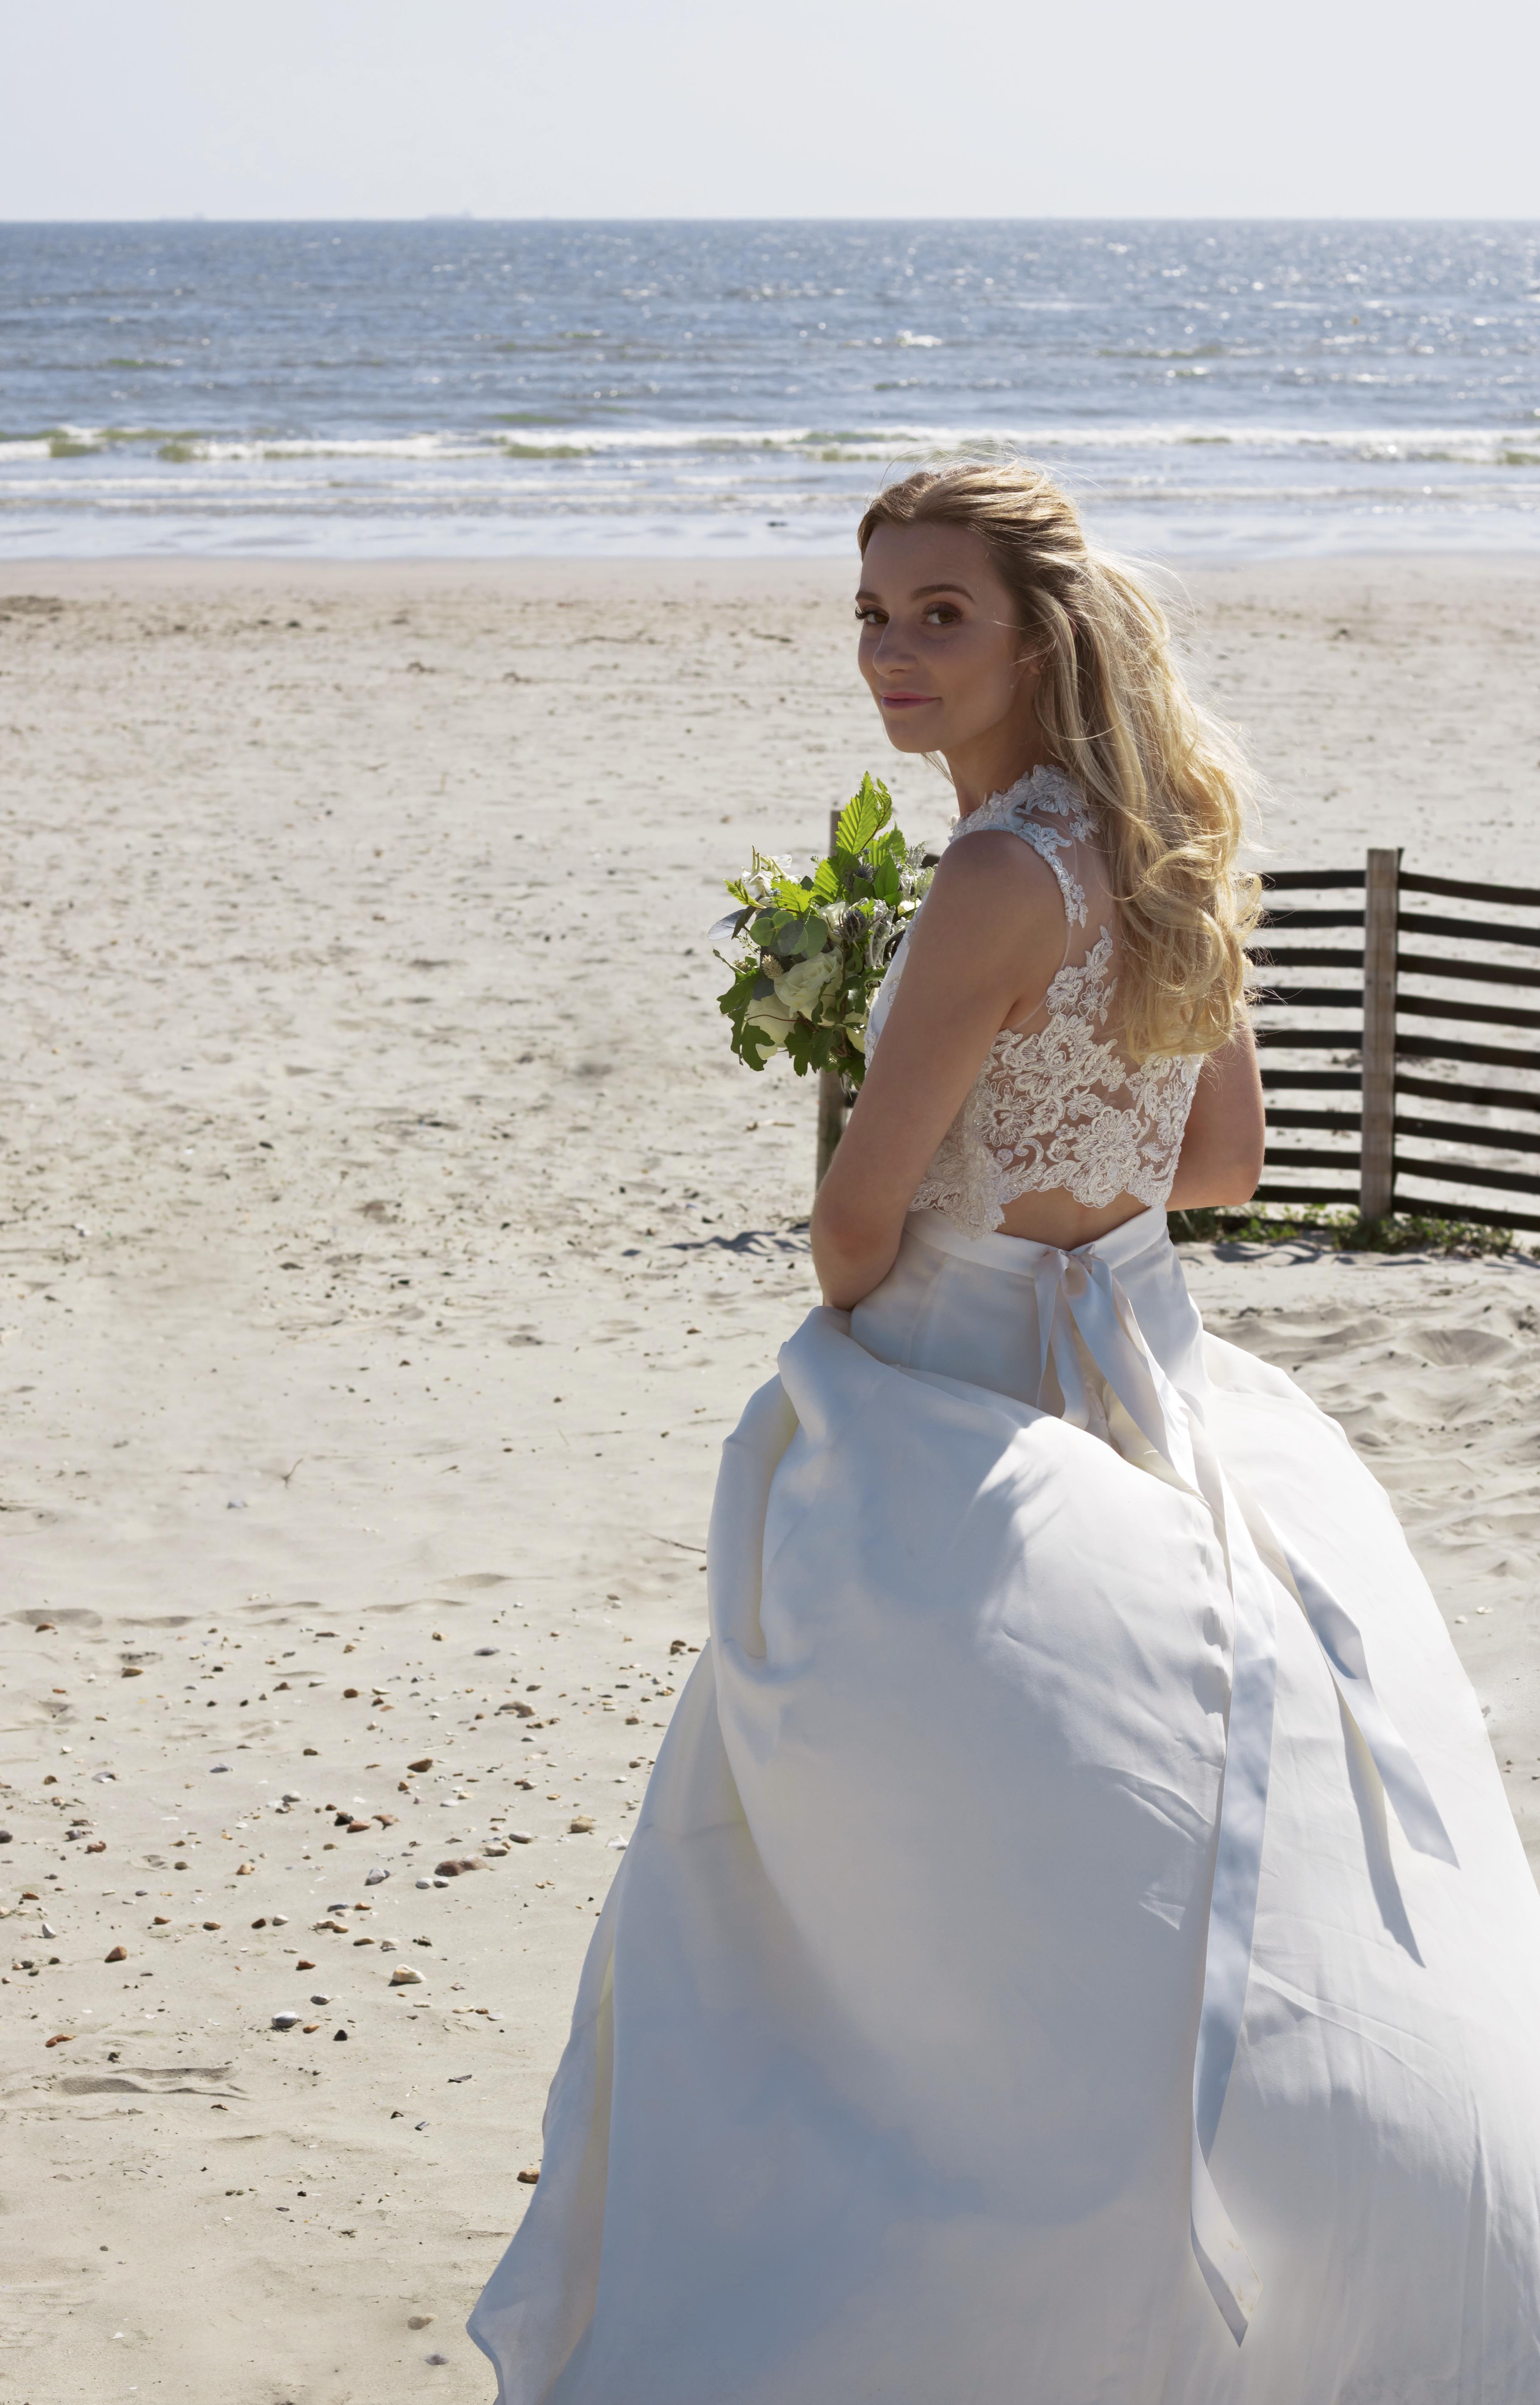 Beautiful Bridal Shots at the Beach